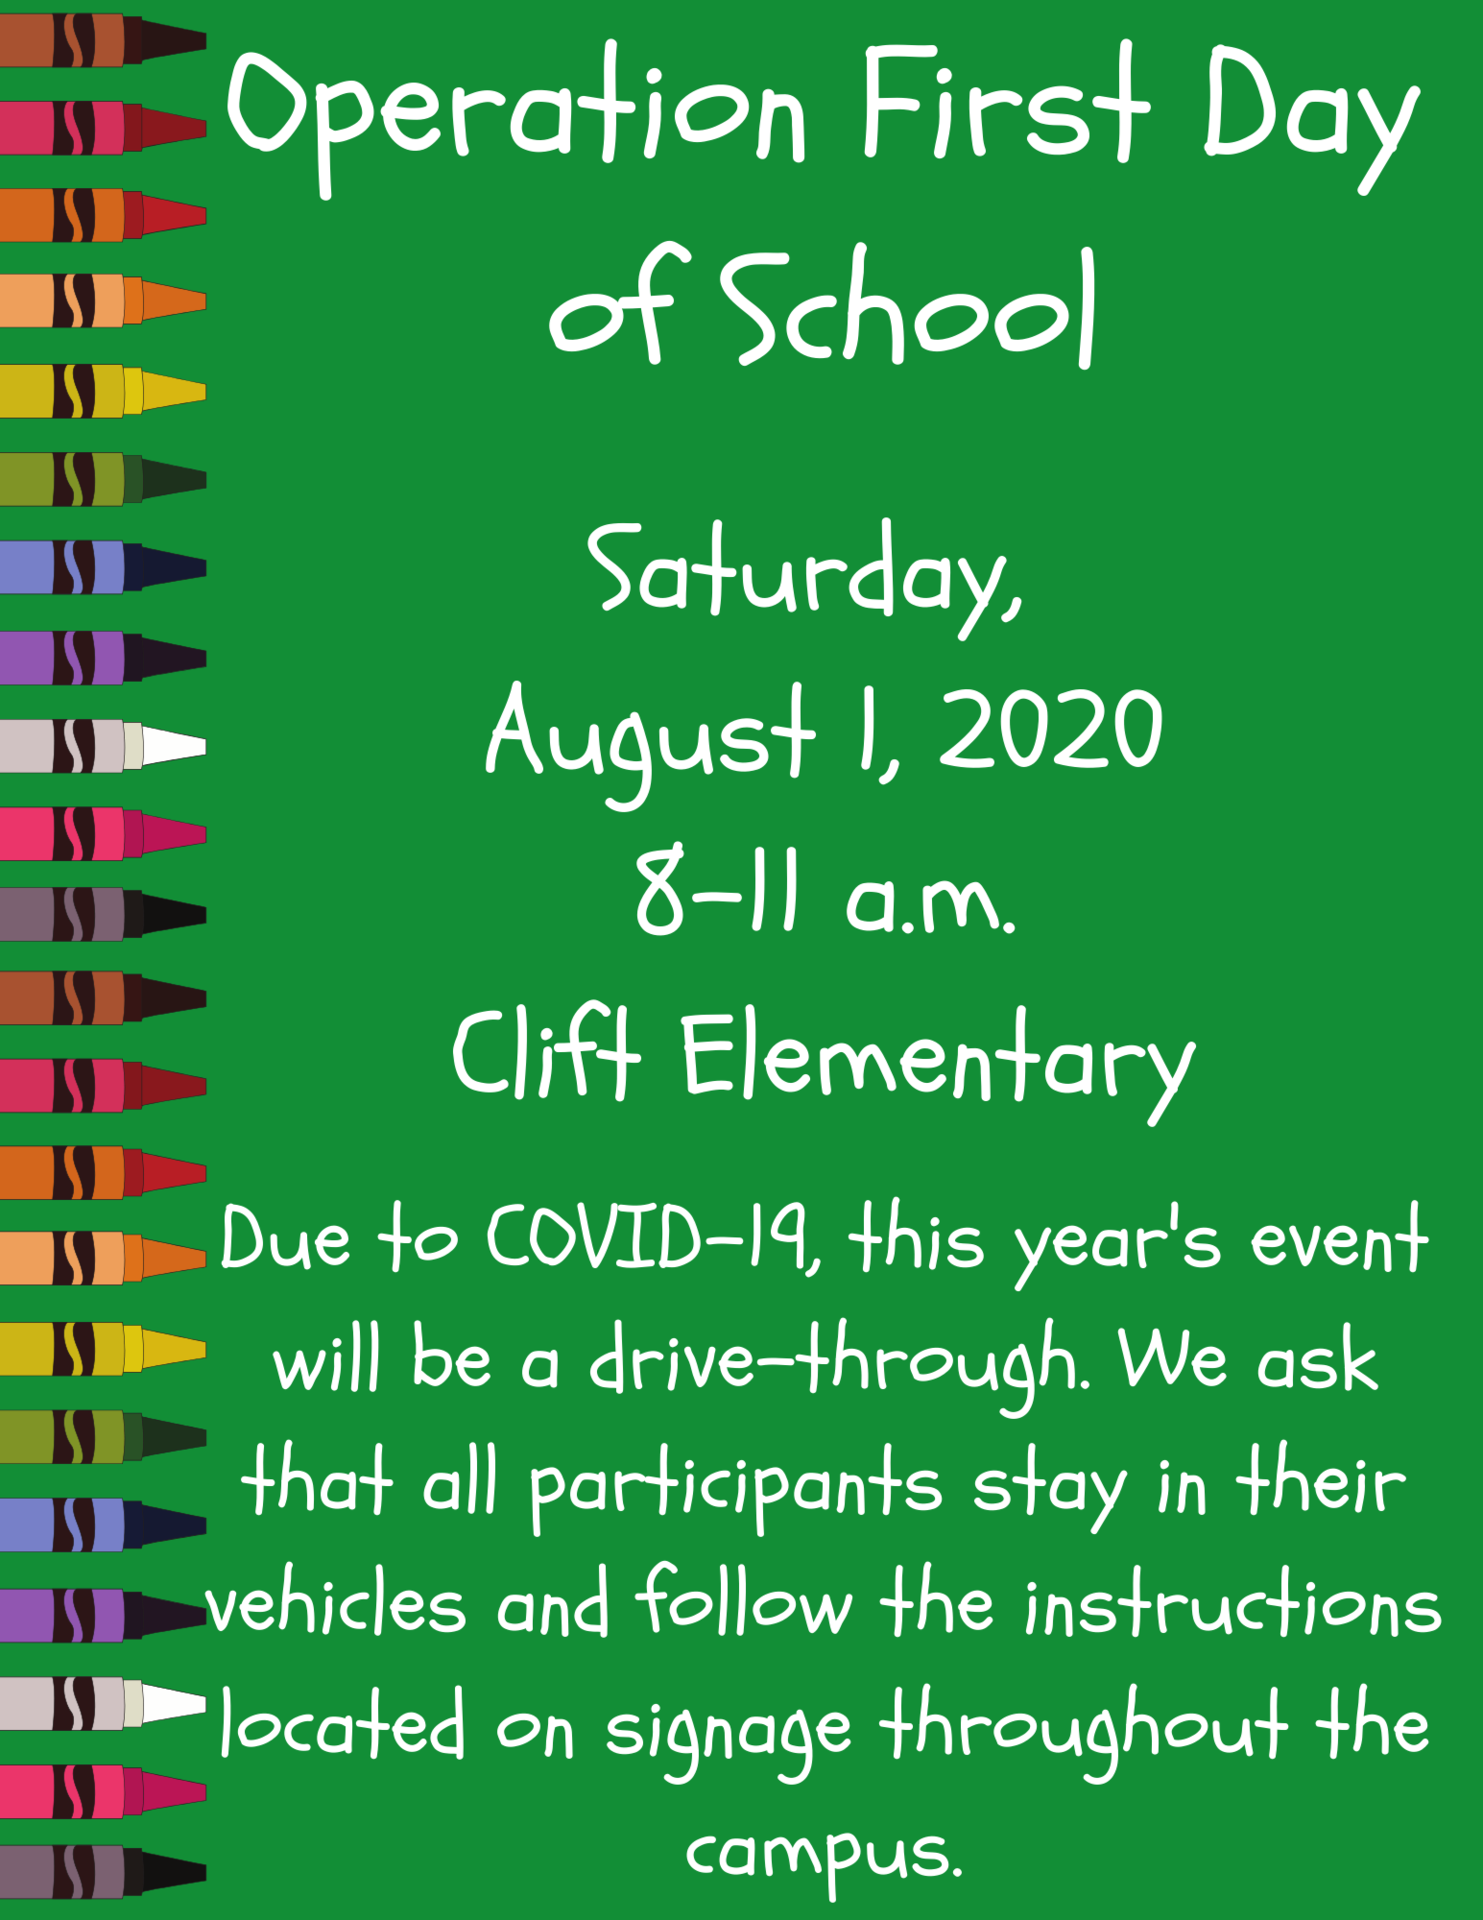 graphic with operation first day of school details